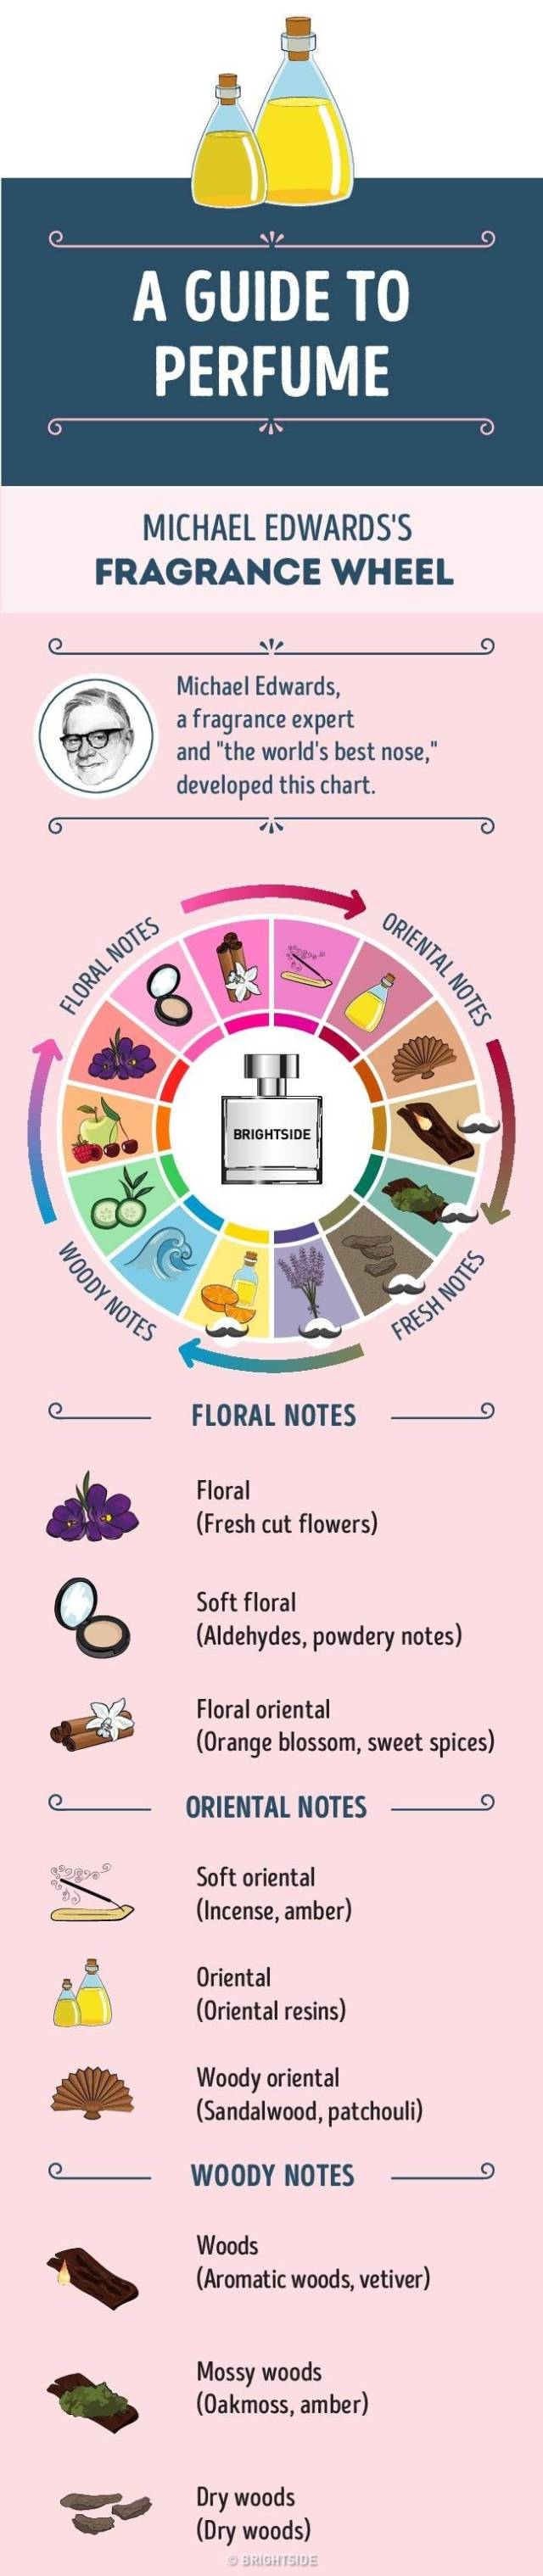 If You Want To Become A Fine Perfume Connoisseur This Guide Is For You